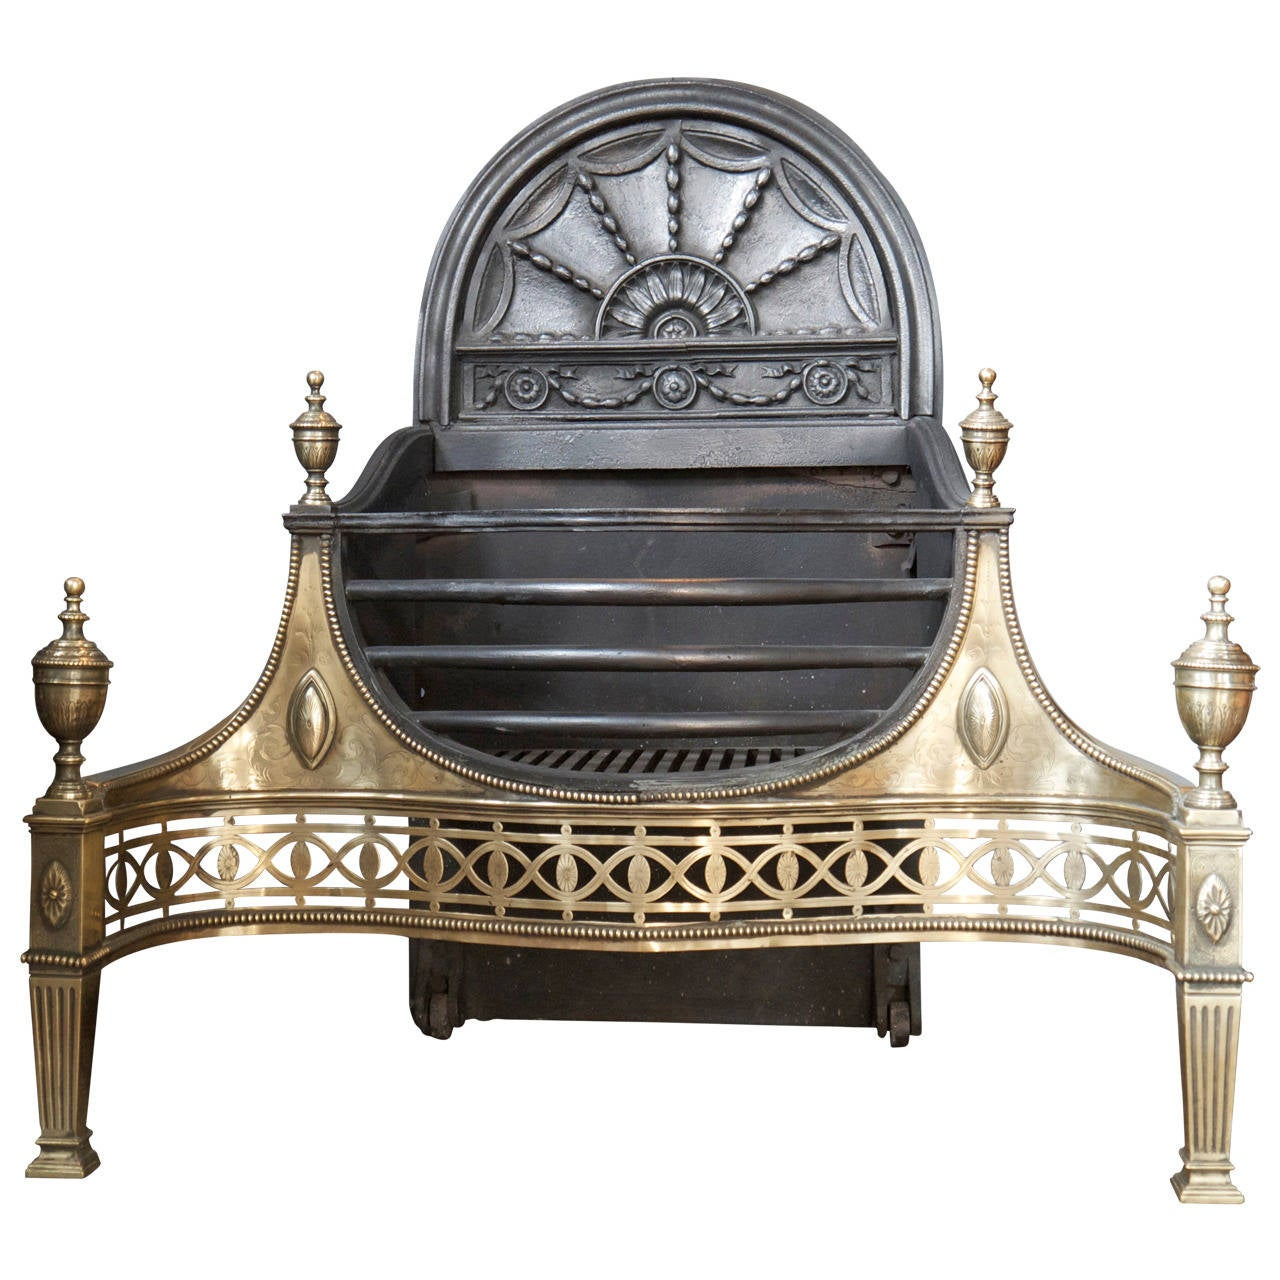 Huge Antique Thomas Elsley Cast Iron And Brass Fire Basket Fireplace For  Sale